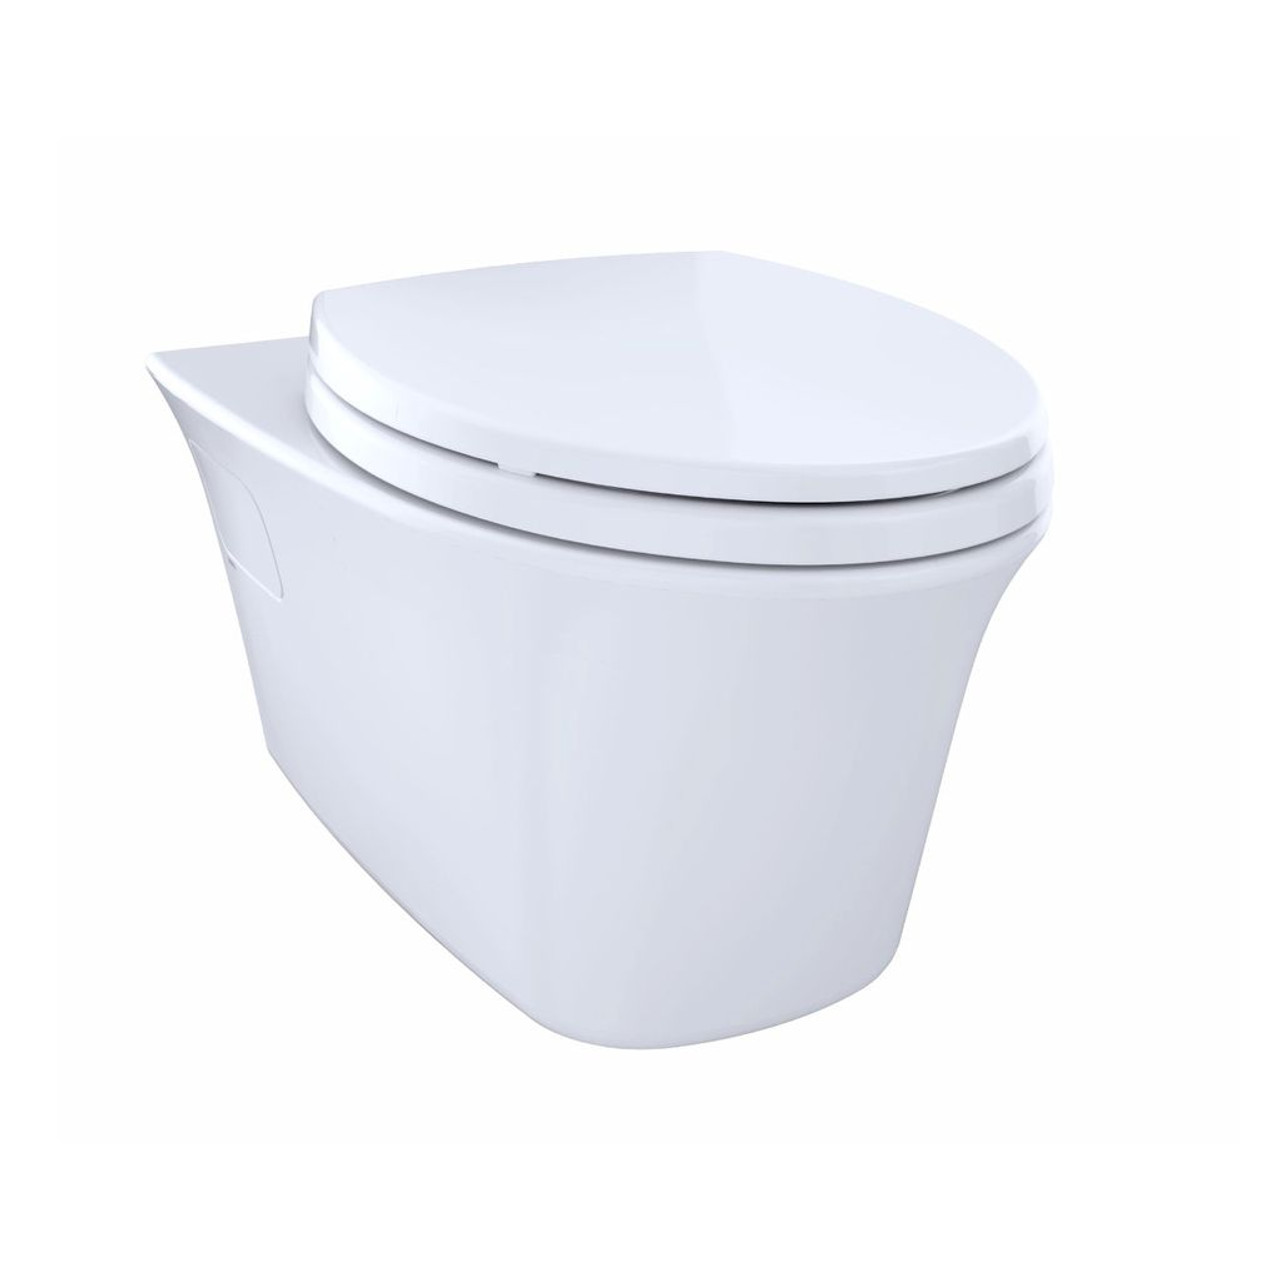 TOTO CT486FG Maris Wall Hung Dual Flush Elongated Toilet Cotton ...